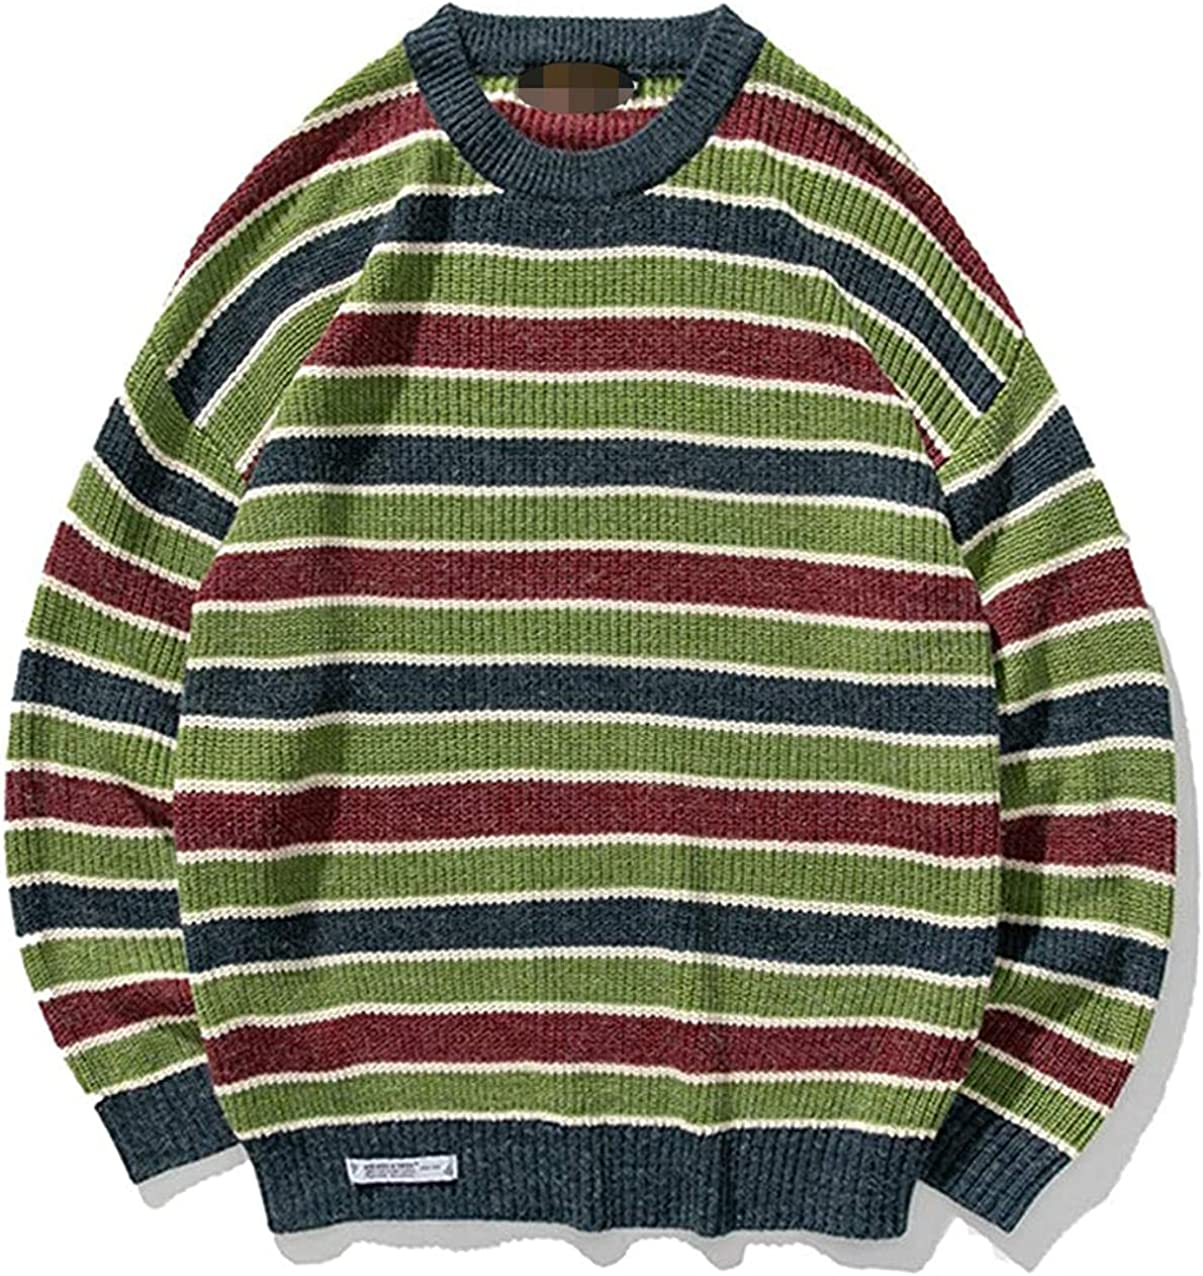 Men Striped Winter Sweater Pullover Harajuku Knitted Sweater Casual Loose Clothing